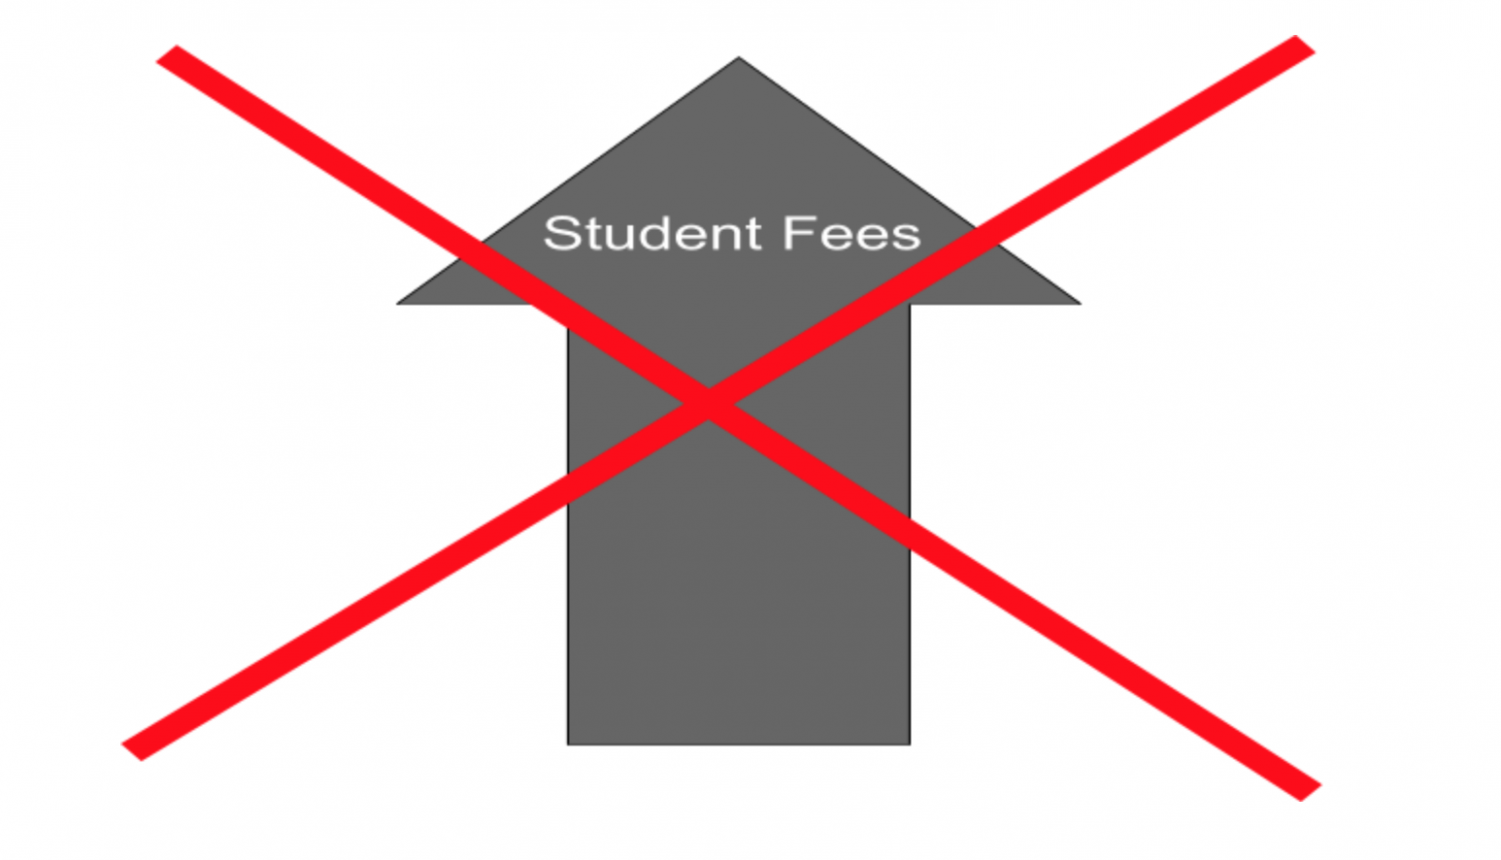 Chaminade students rejected a fee proposal of $100, so the fee will remain $45 for the upcoming year.